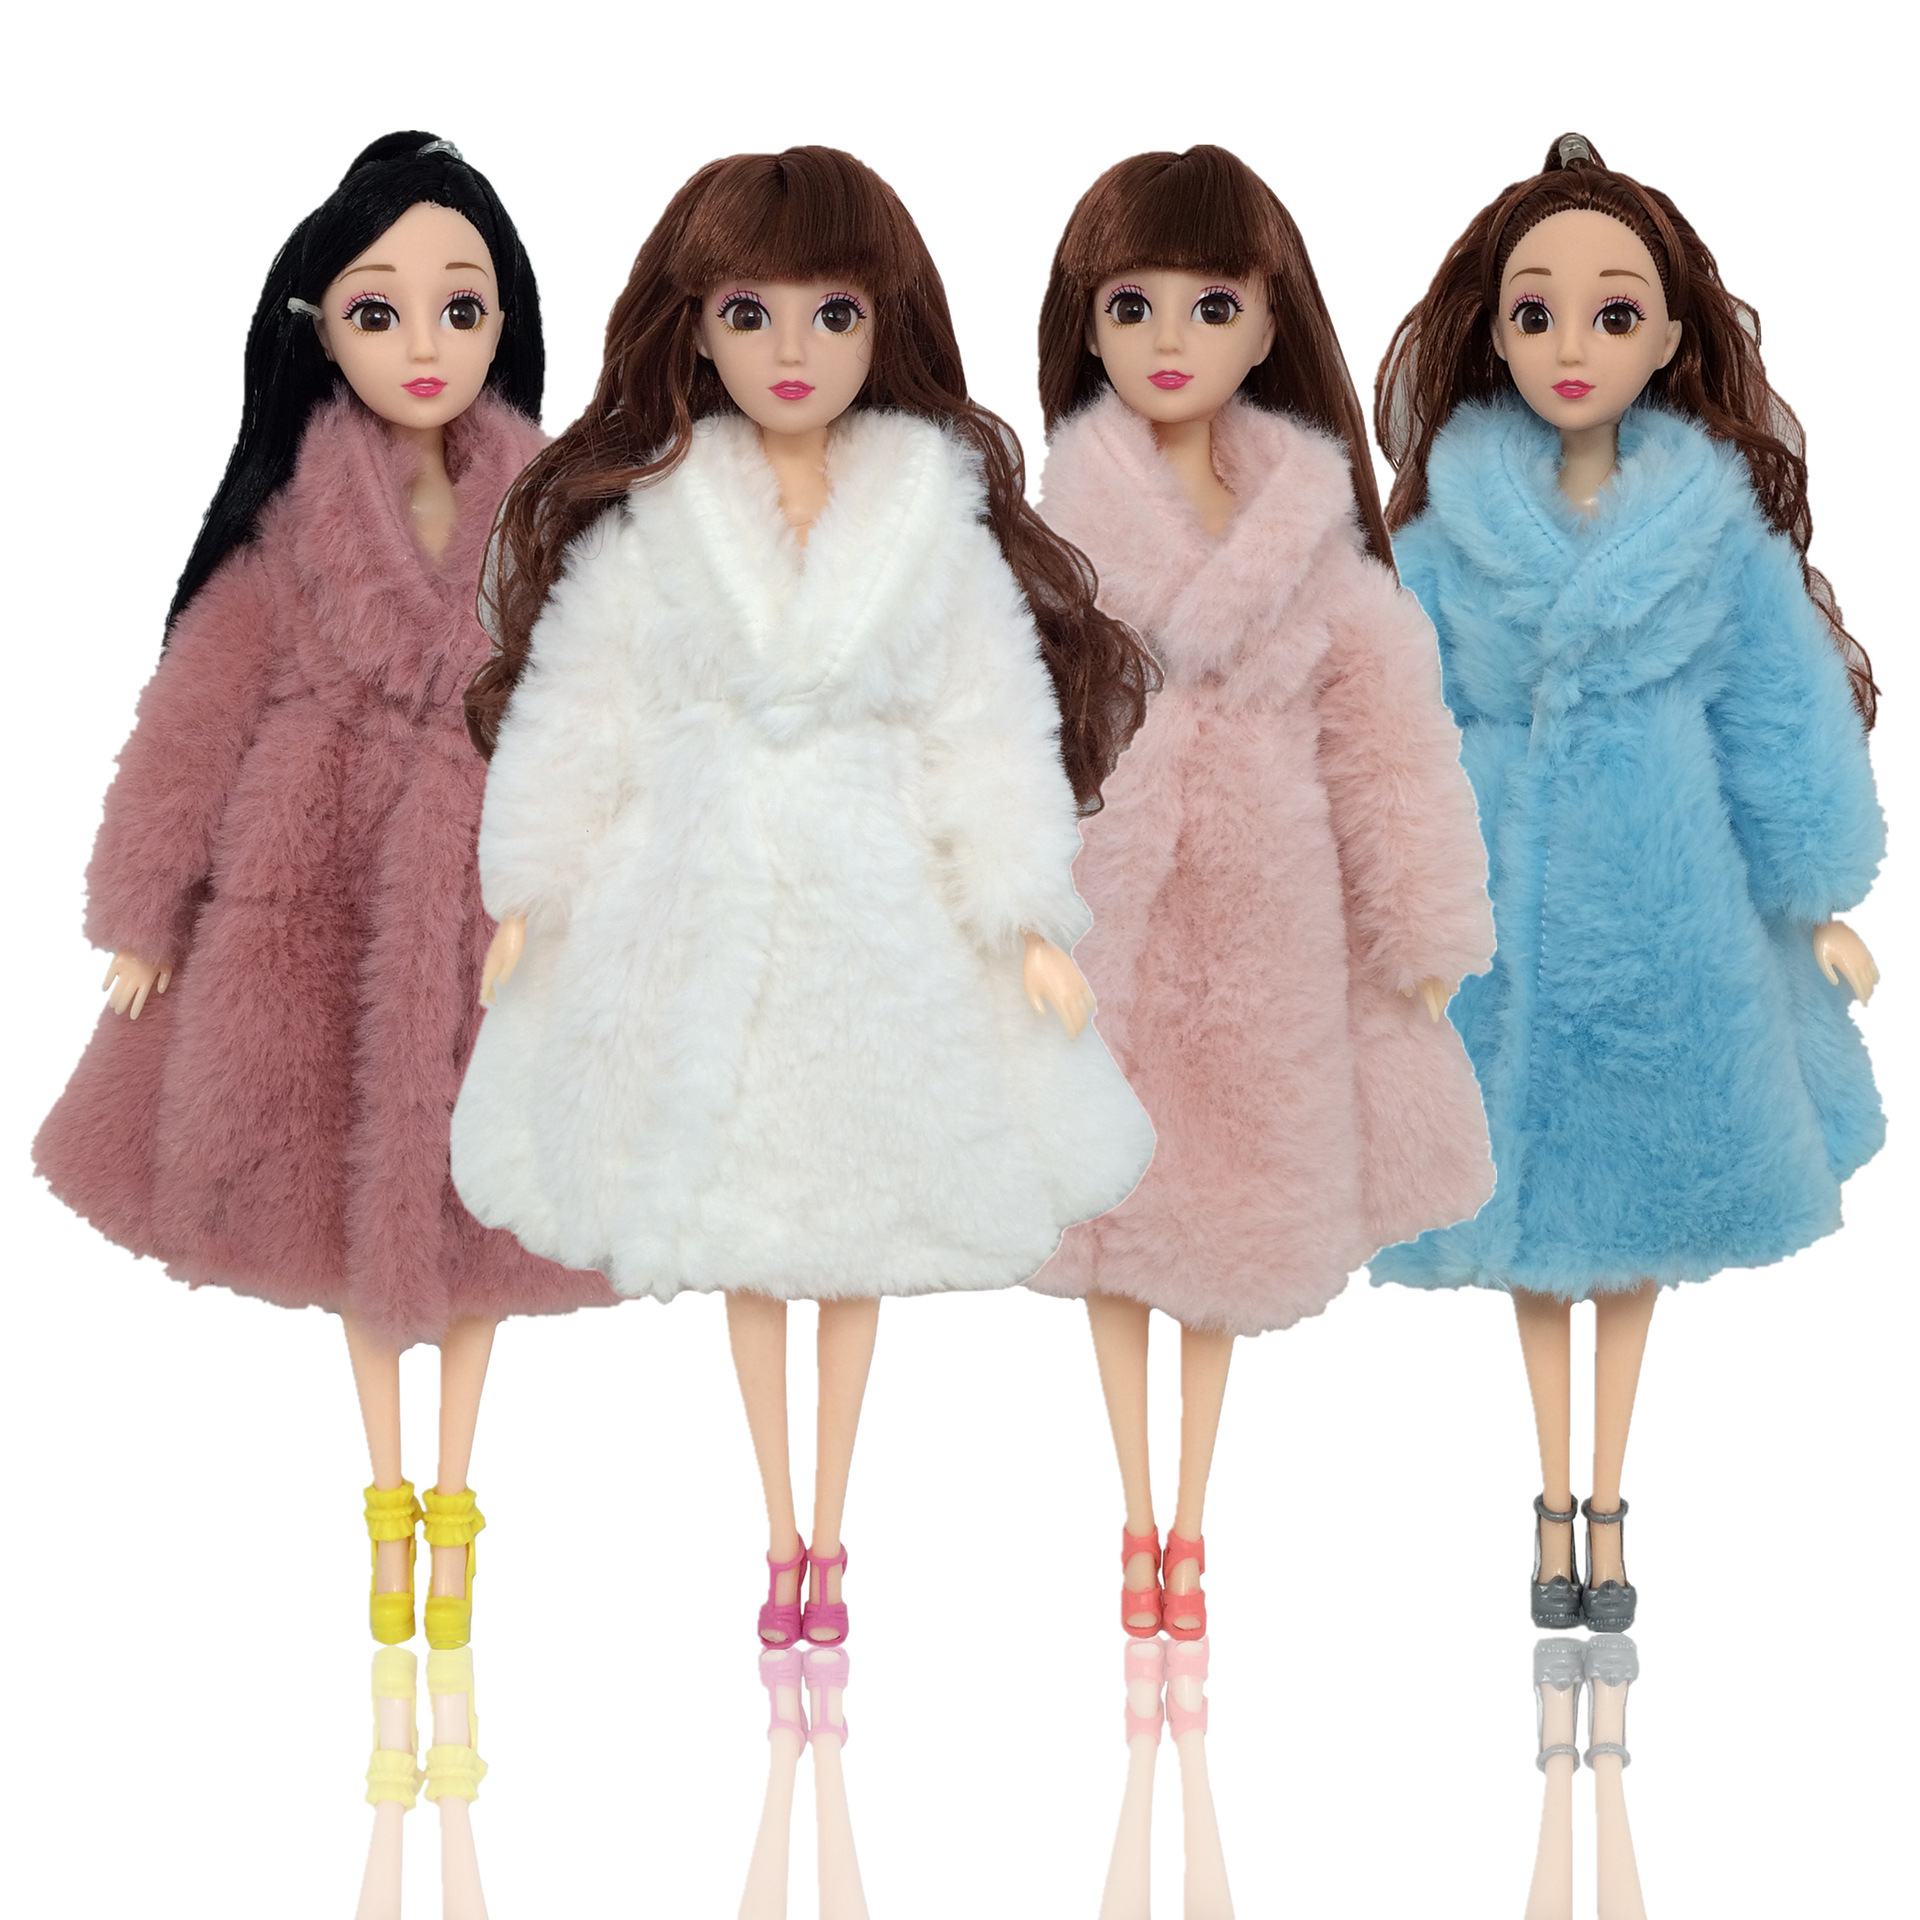 Fashion BJD Dolls Plush Coat Doll Clothes Changeable Dress Up 11 Inch 30cm Bjd Clothes Suit Short Skirt DIY Toys For Girls Gift